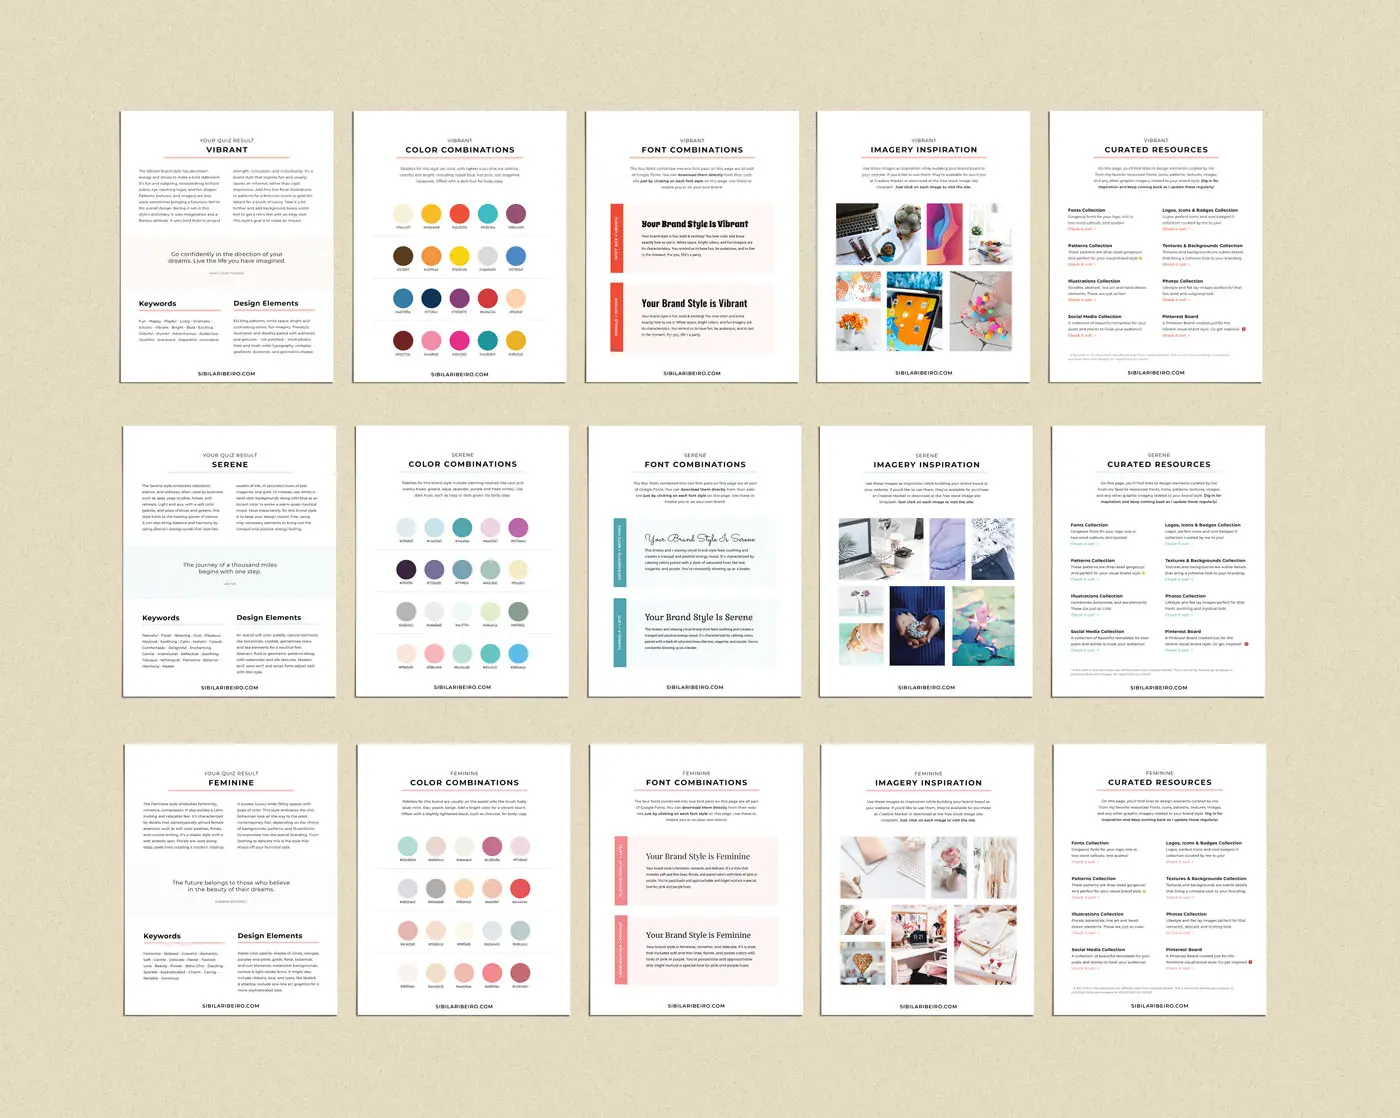 examples of PDF on quiz landing page